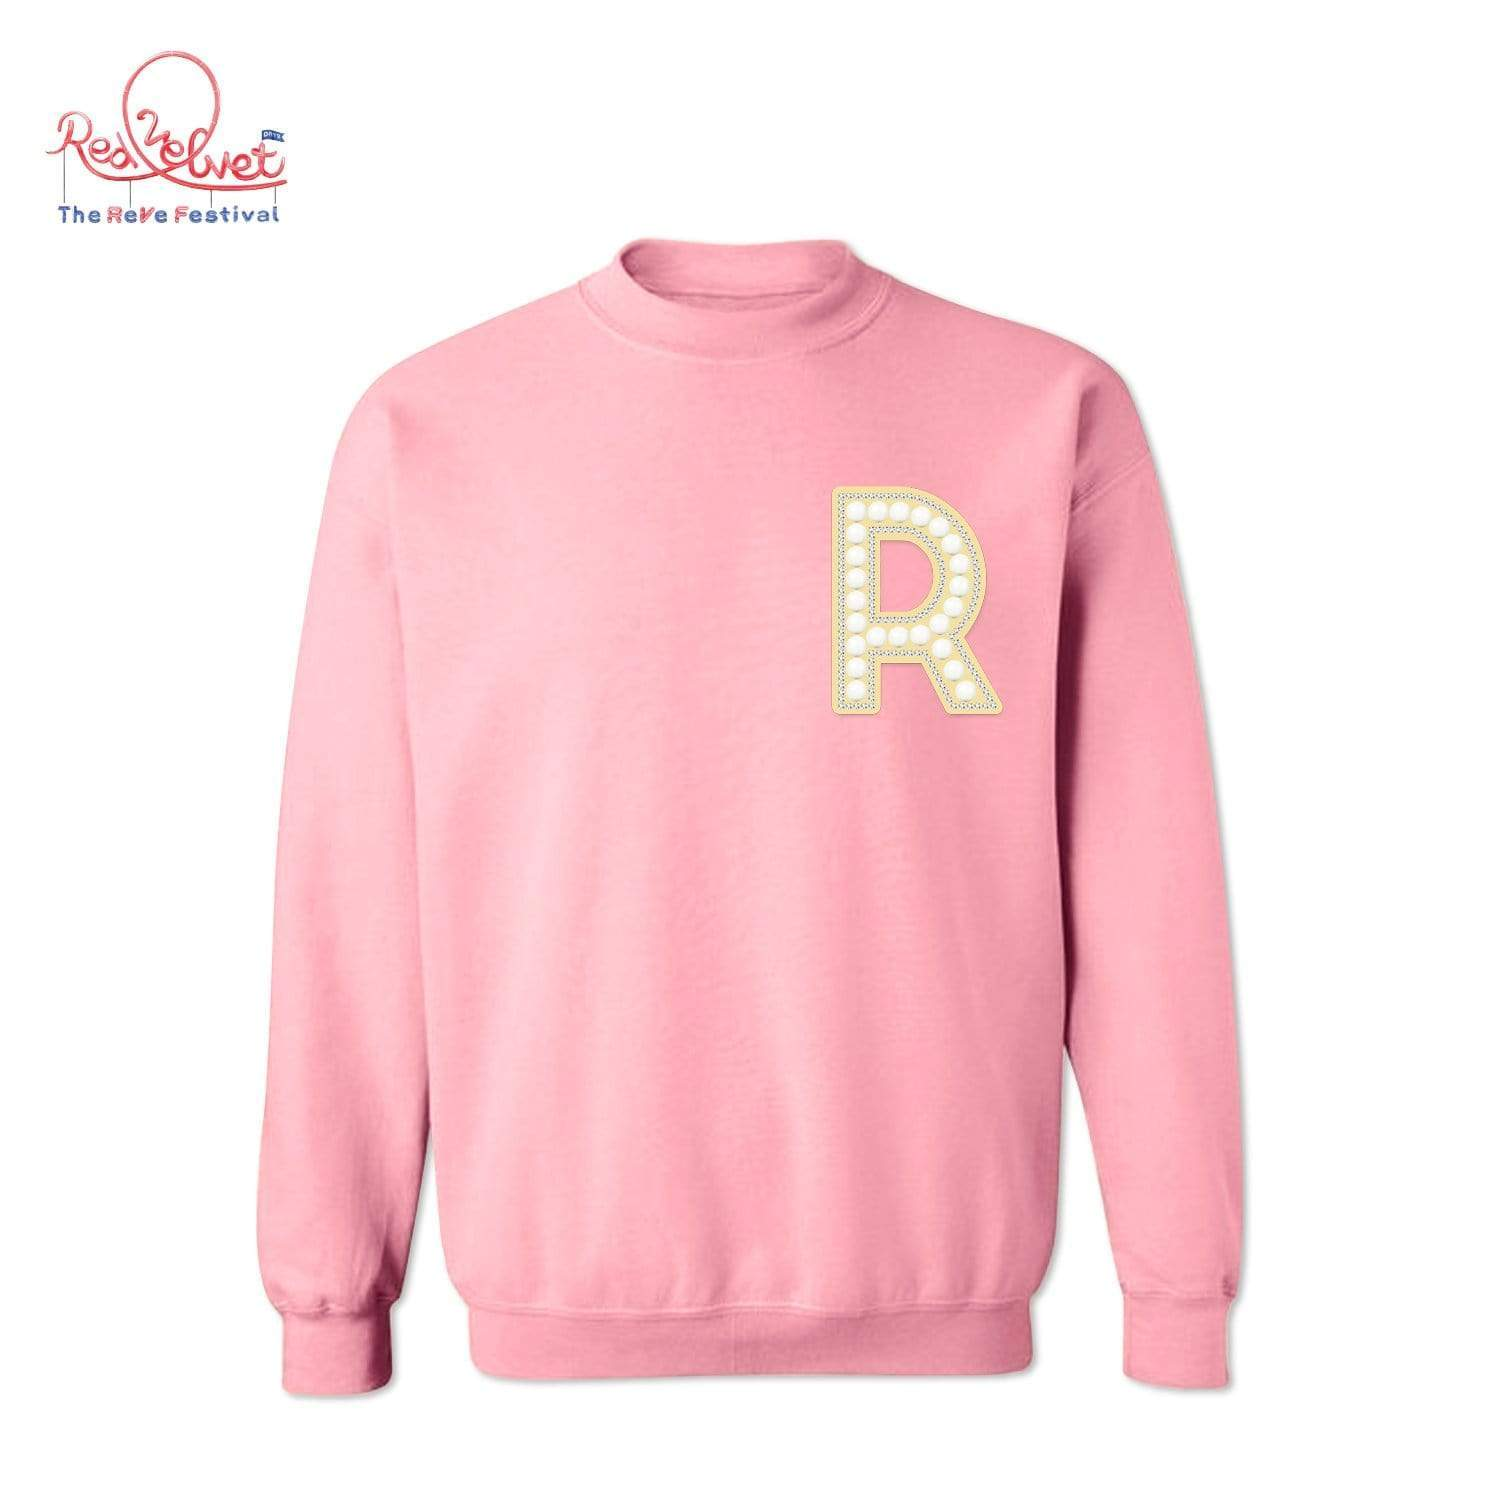 pre-order-red-velvet-day-2-sweet-pink-color-sweatshirts-with-exclusive-photo-tag-tops-red-velvet-739275_2400x